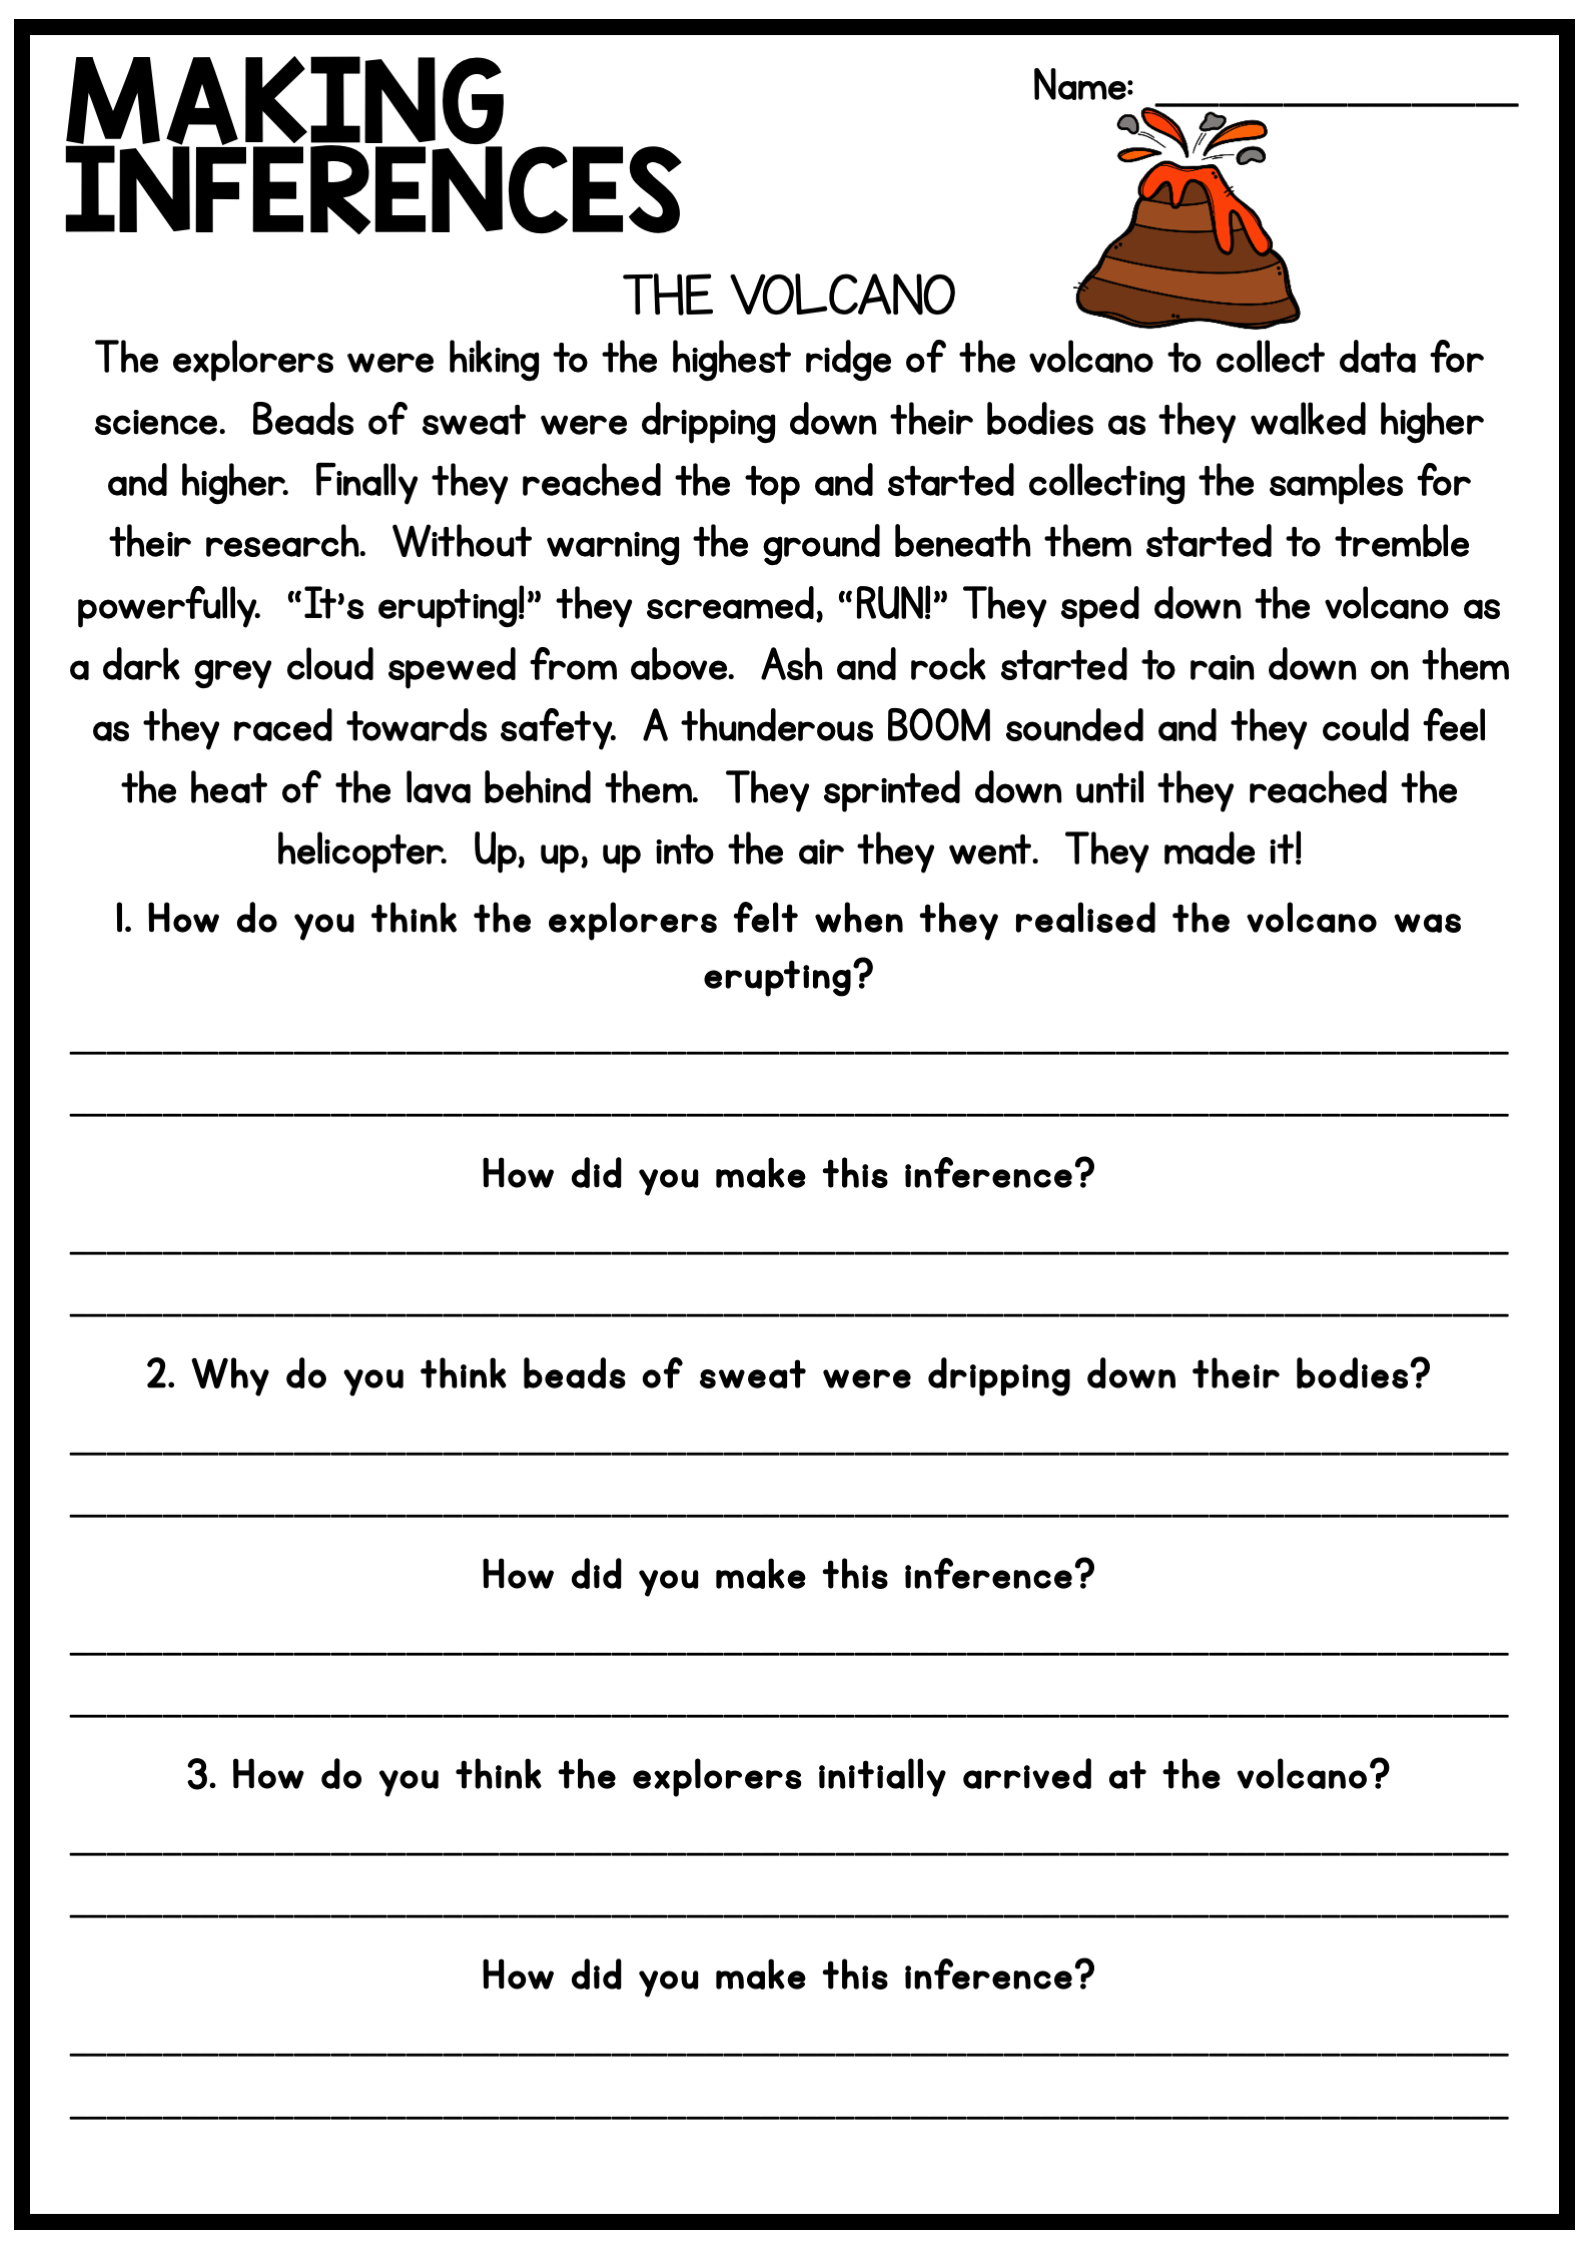 hight resolution of Making Inferences and Drawing Conclusions - Reading Worksheet   5th grade  worksheets